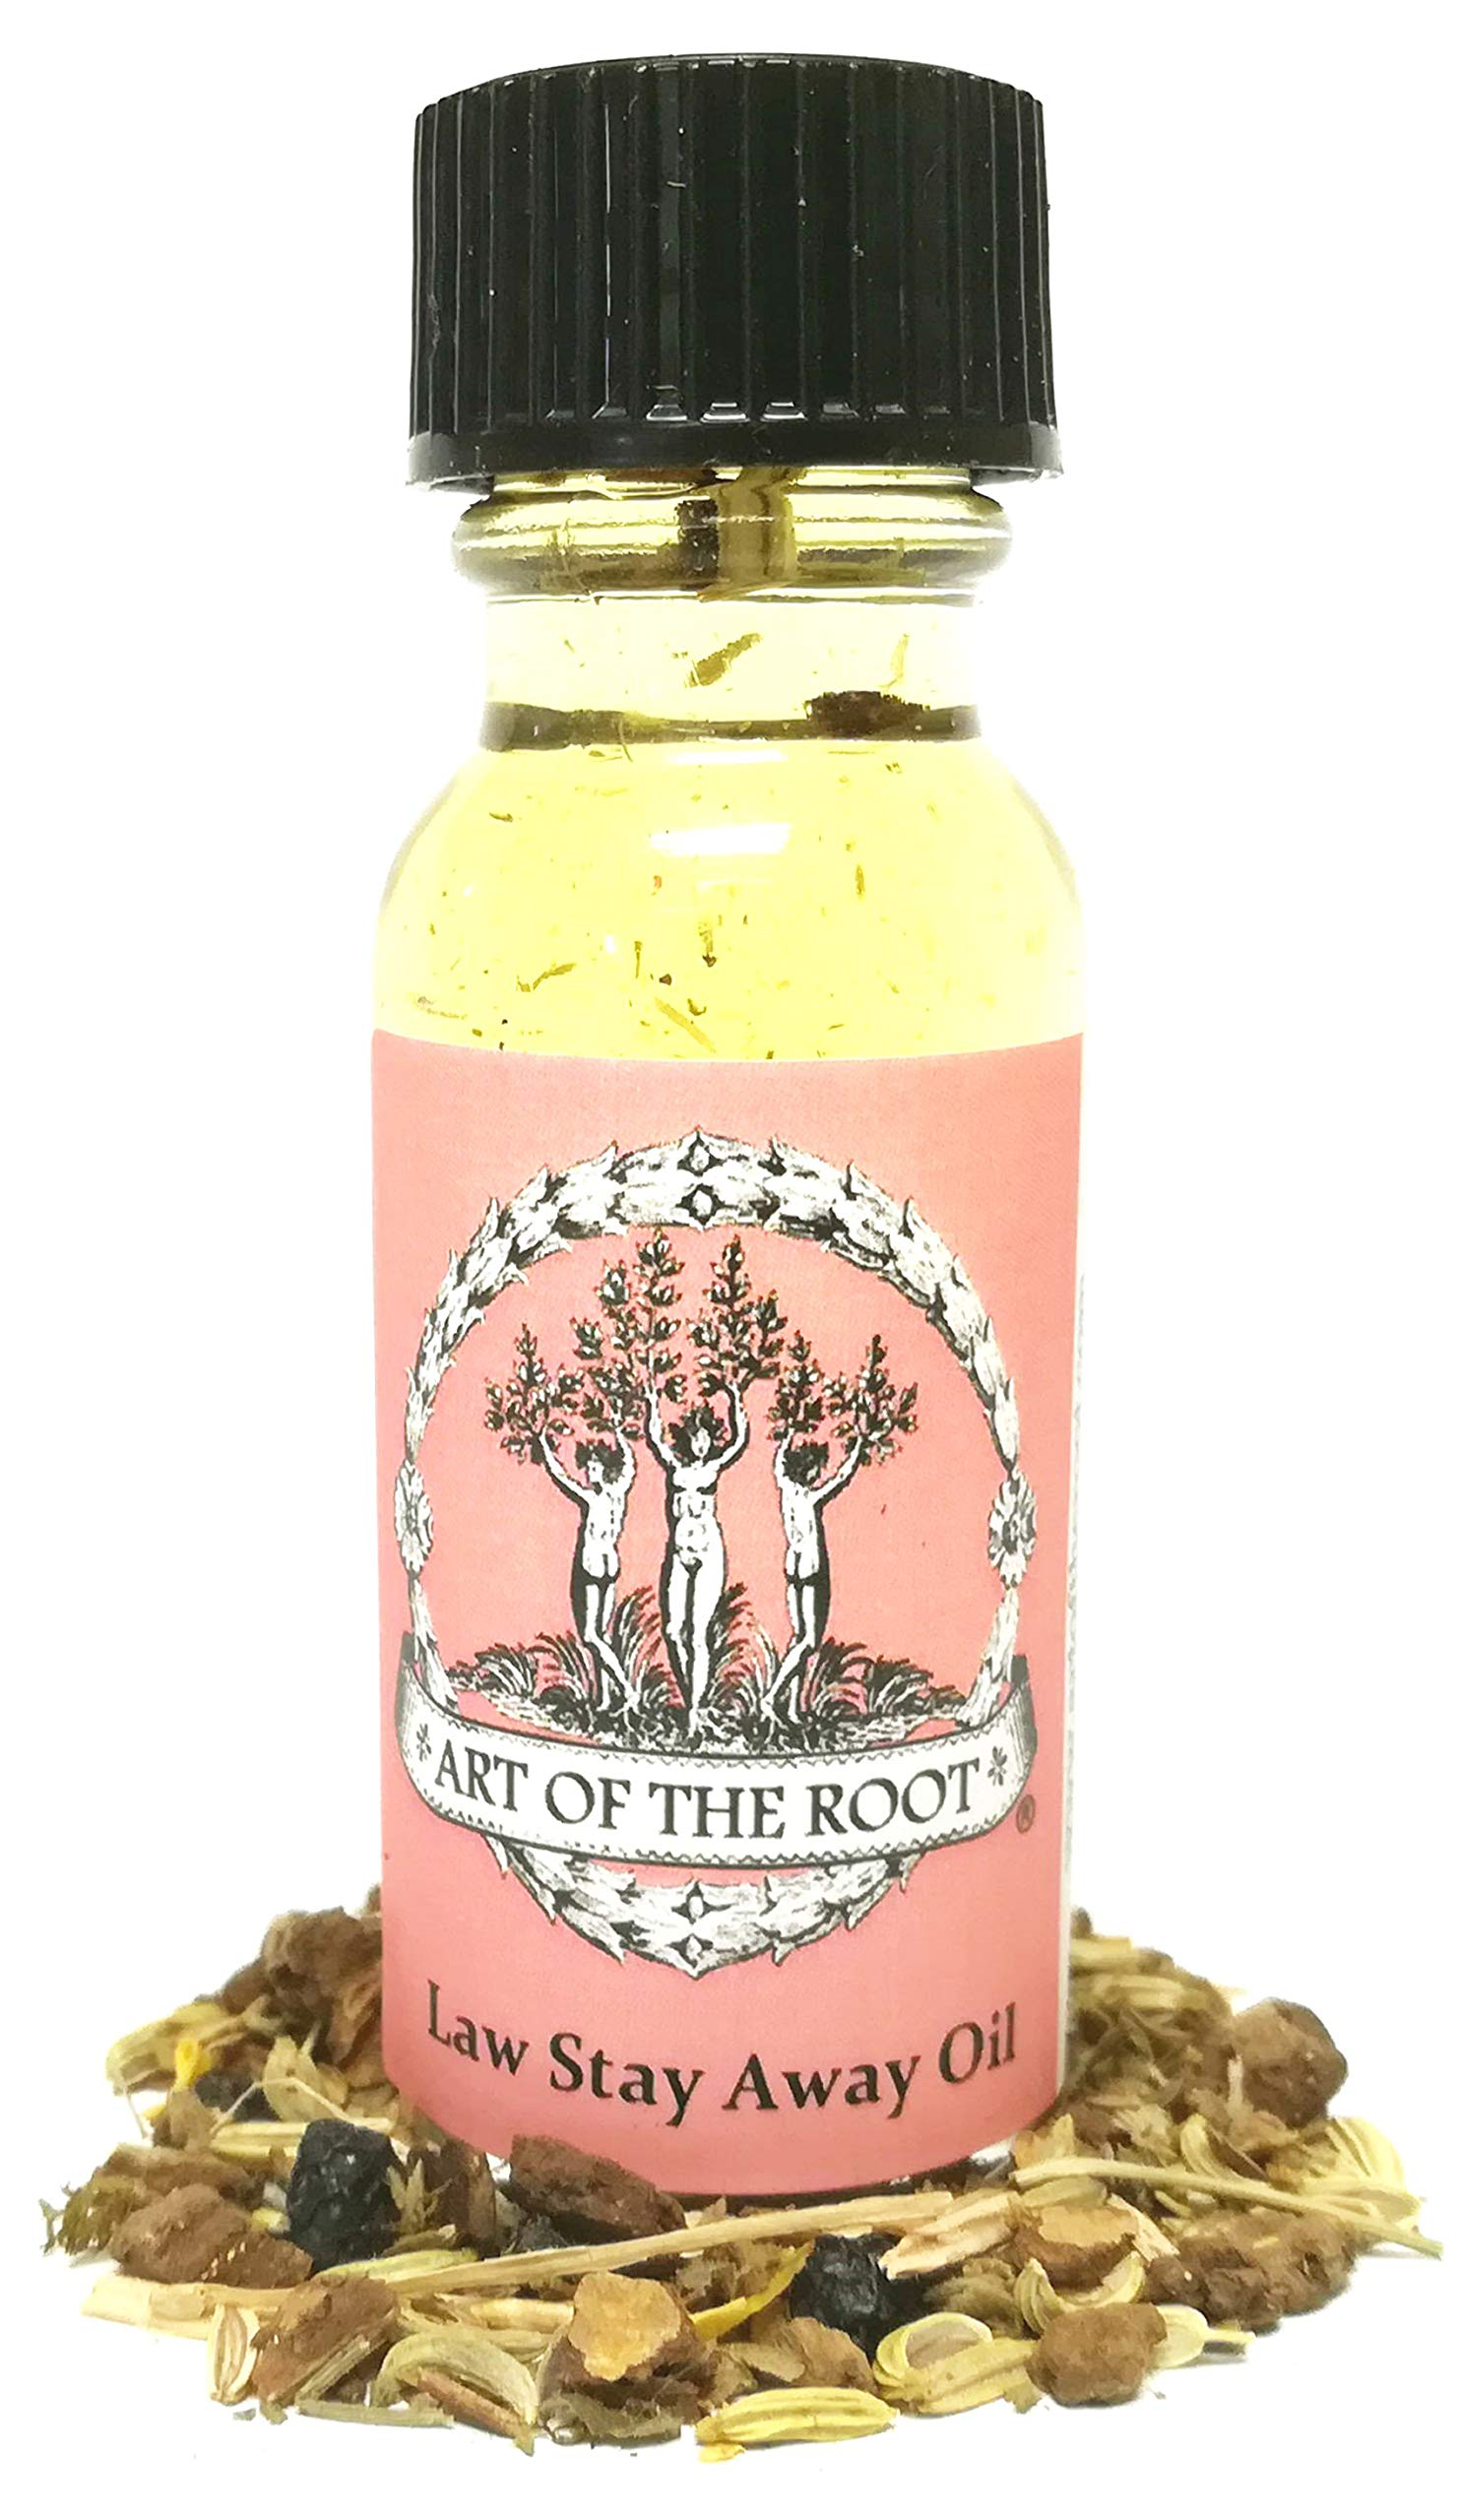 Law Stay Away Oil for Police, Lawsuits & Legal Issues 1/2 oz Hoodoo Voodoo Wicca Pagan